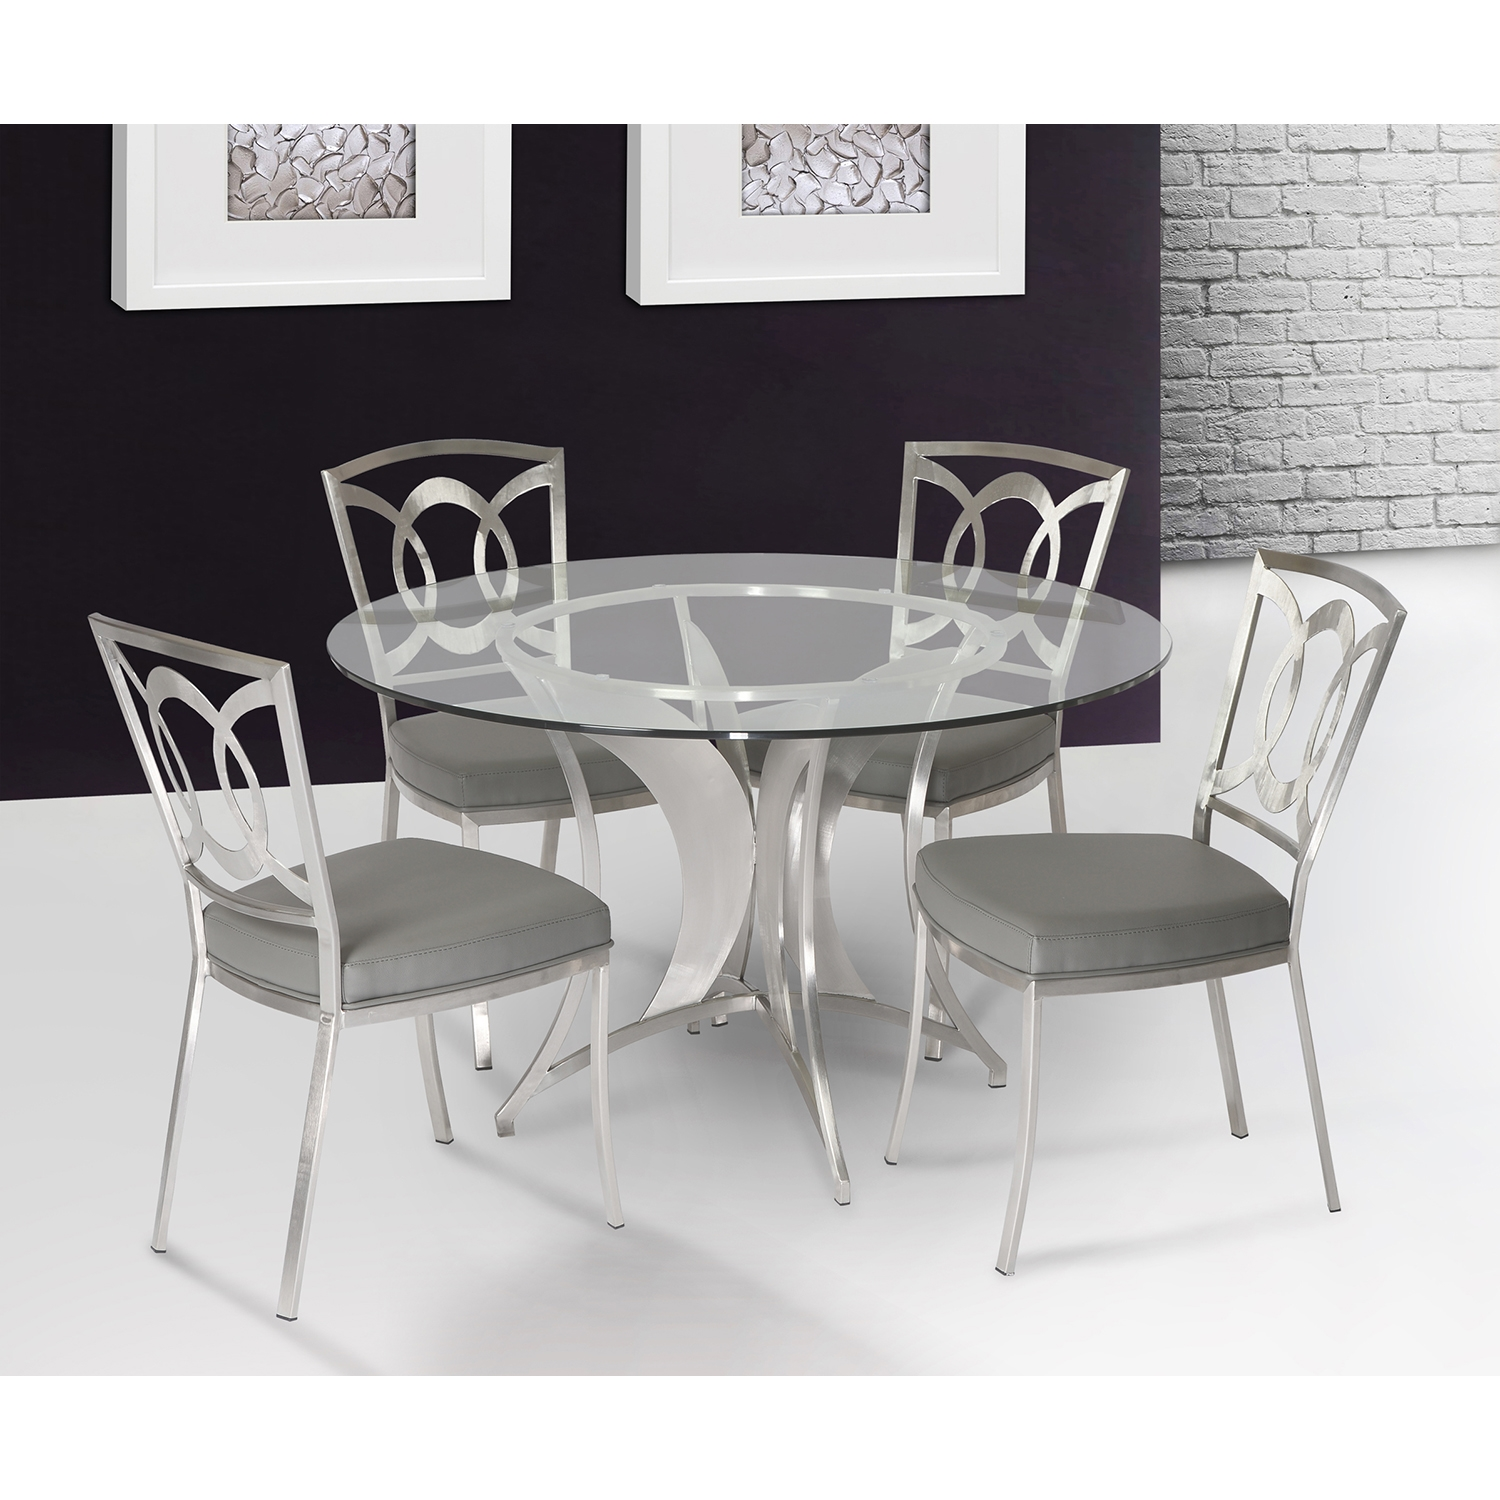 Drake 5-Piece Modern Dining Table - Gray - AL-LCDRDIB201TO-CHGRB201-SET